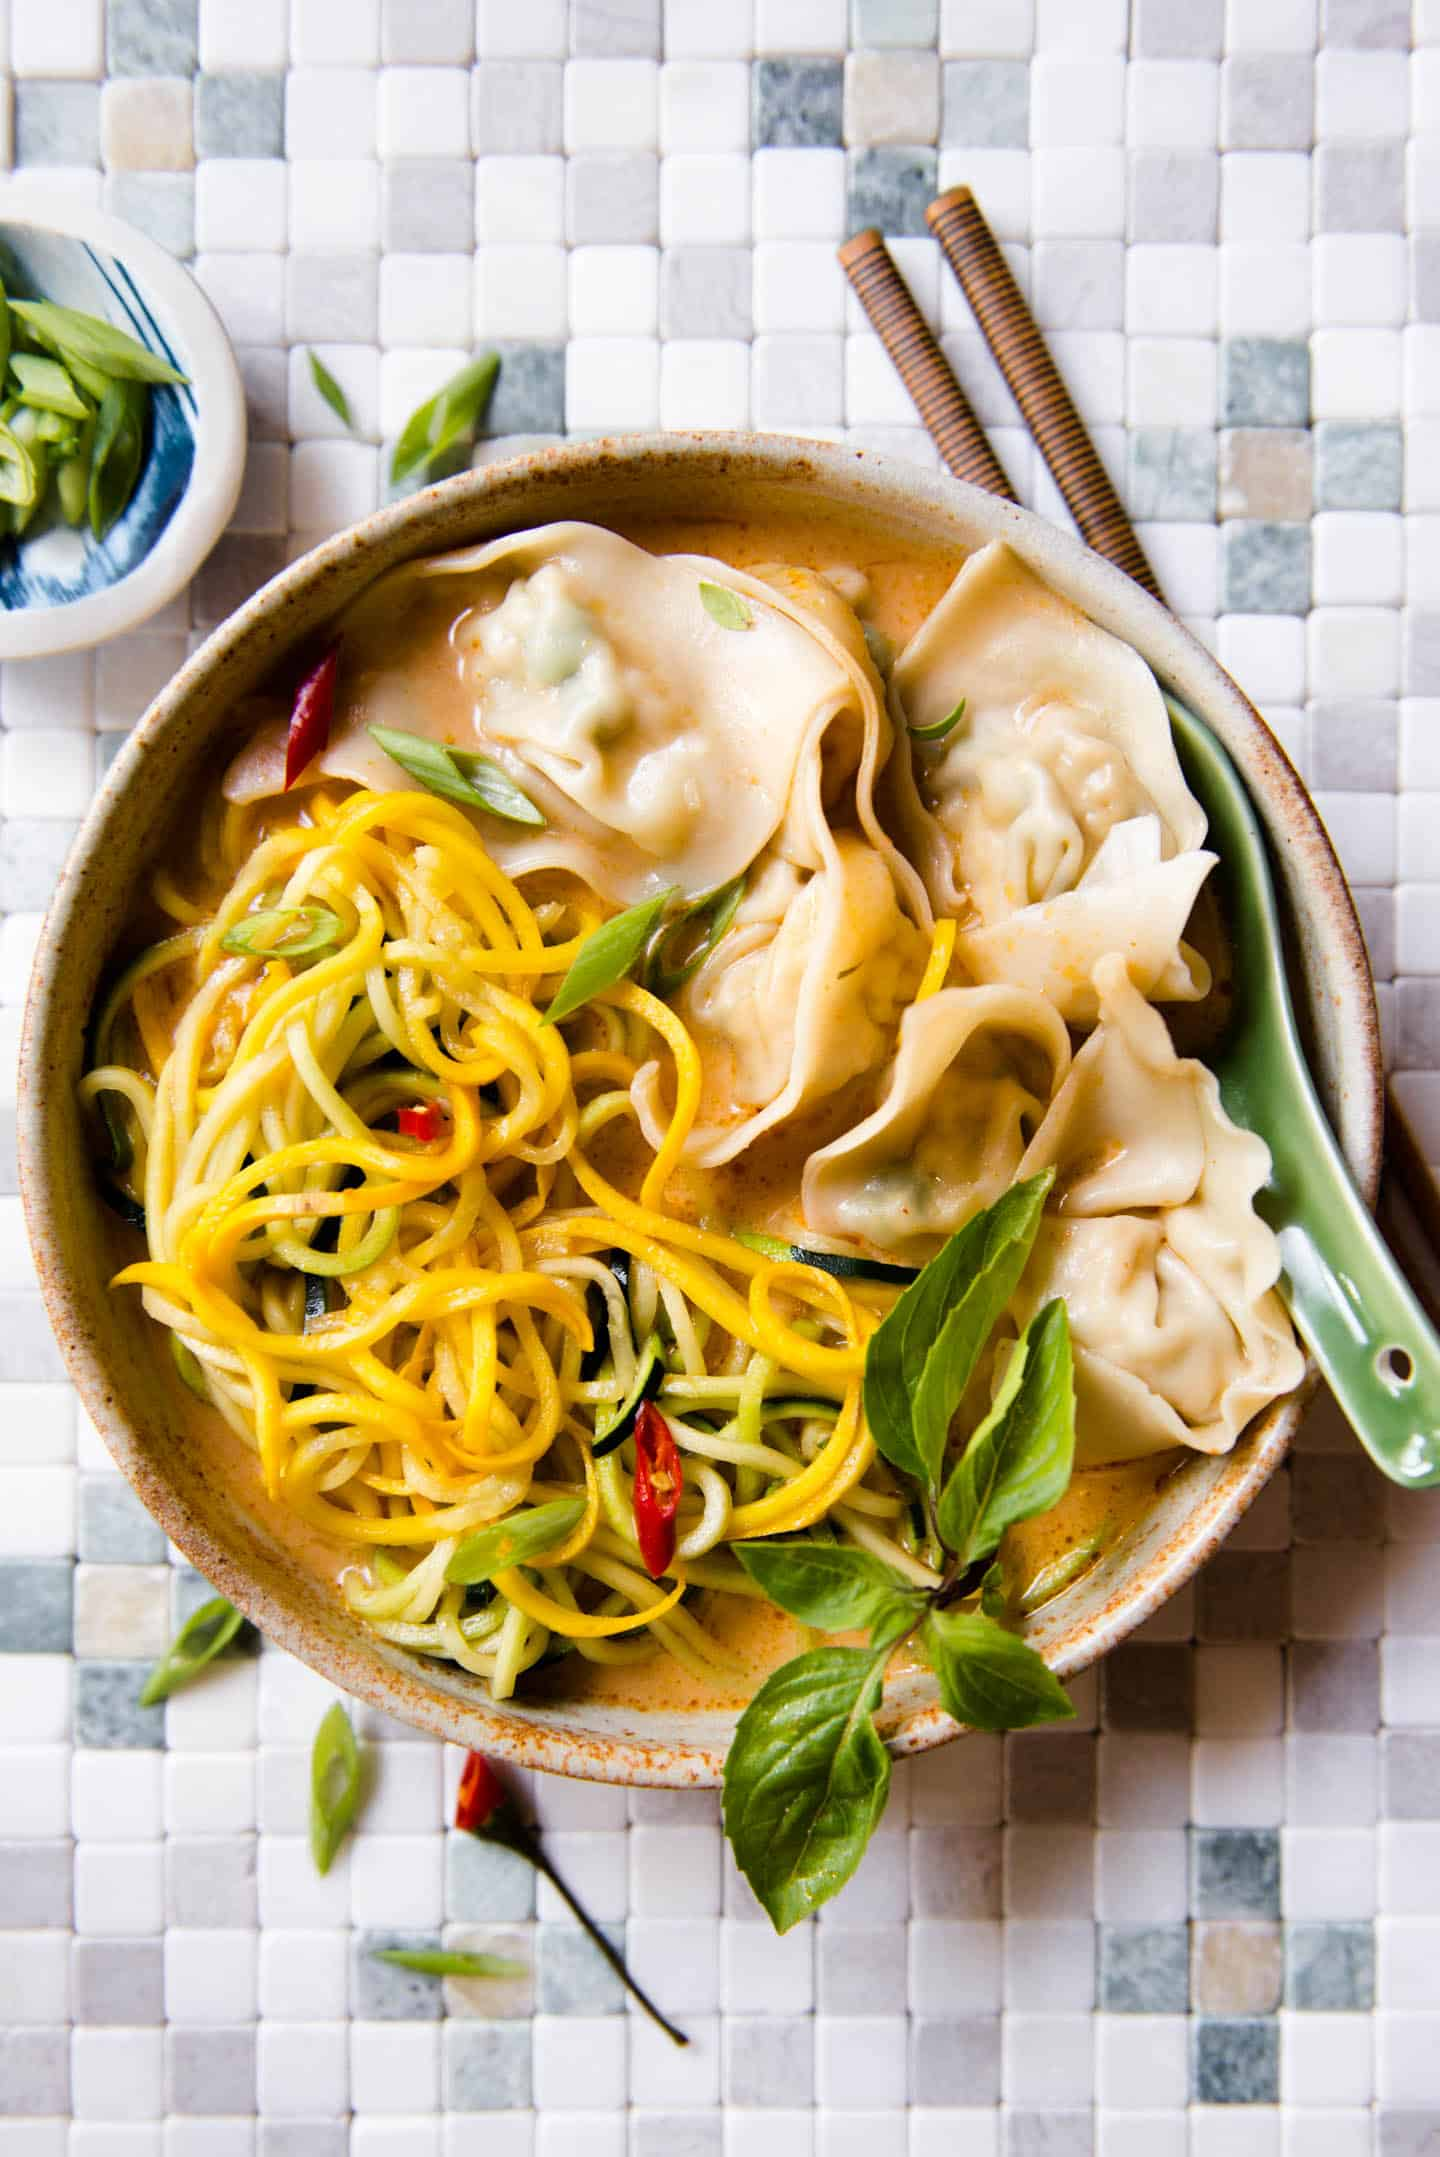 Red Curry Wonton Soup Recipe with Zucchini Noodles